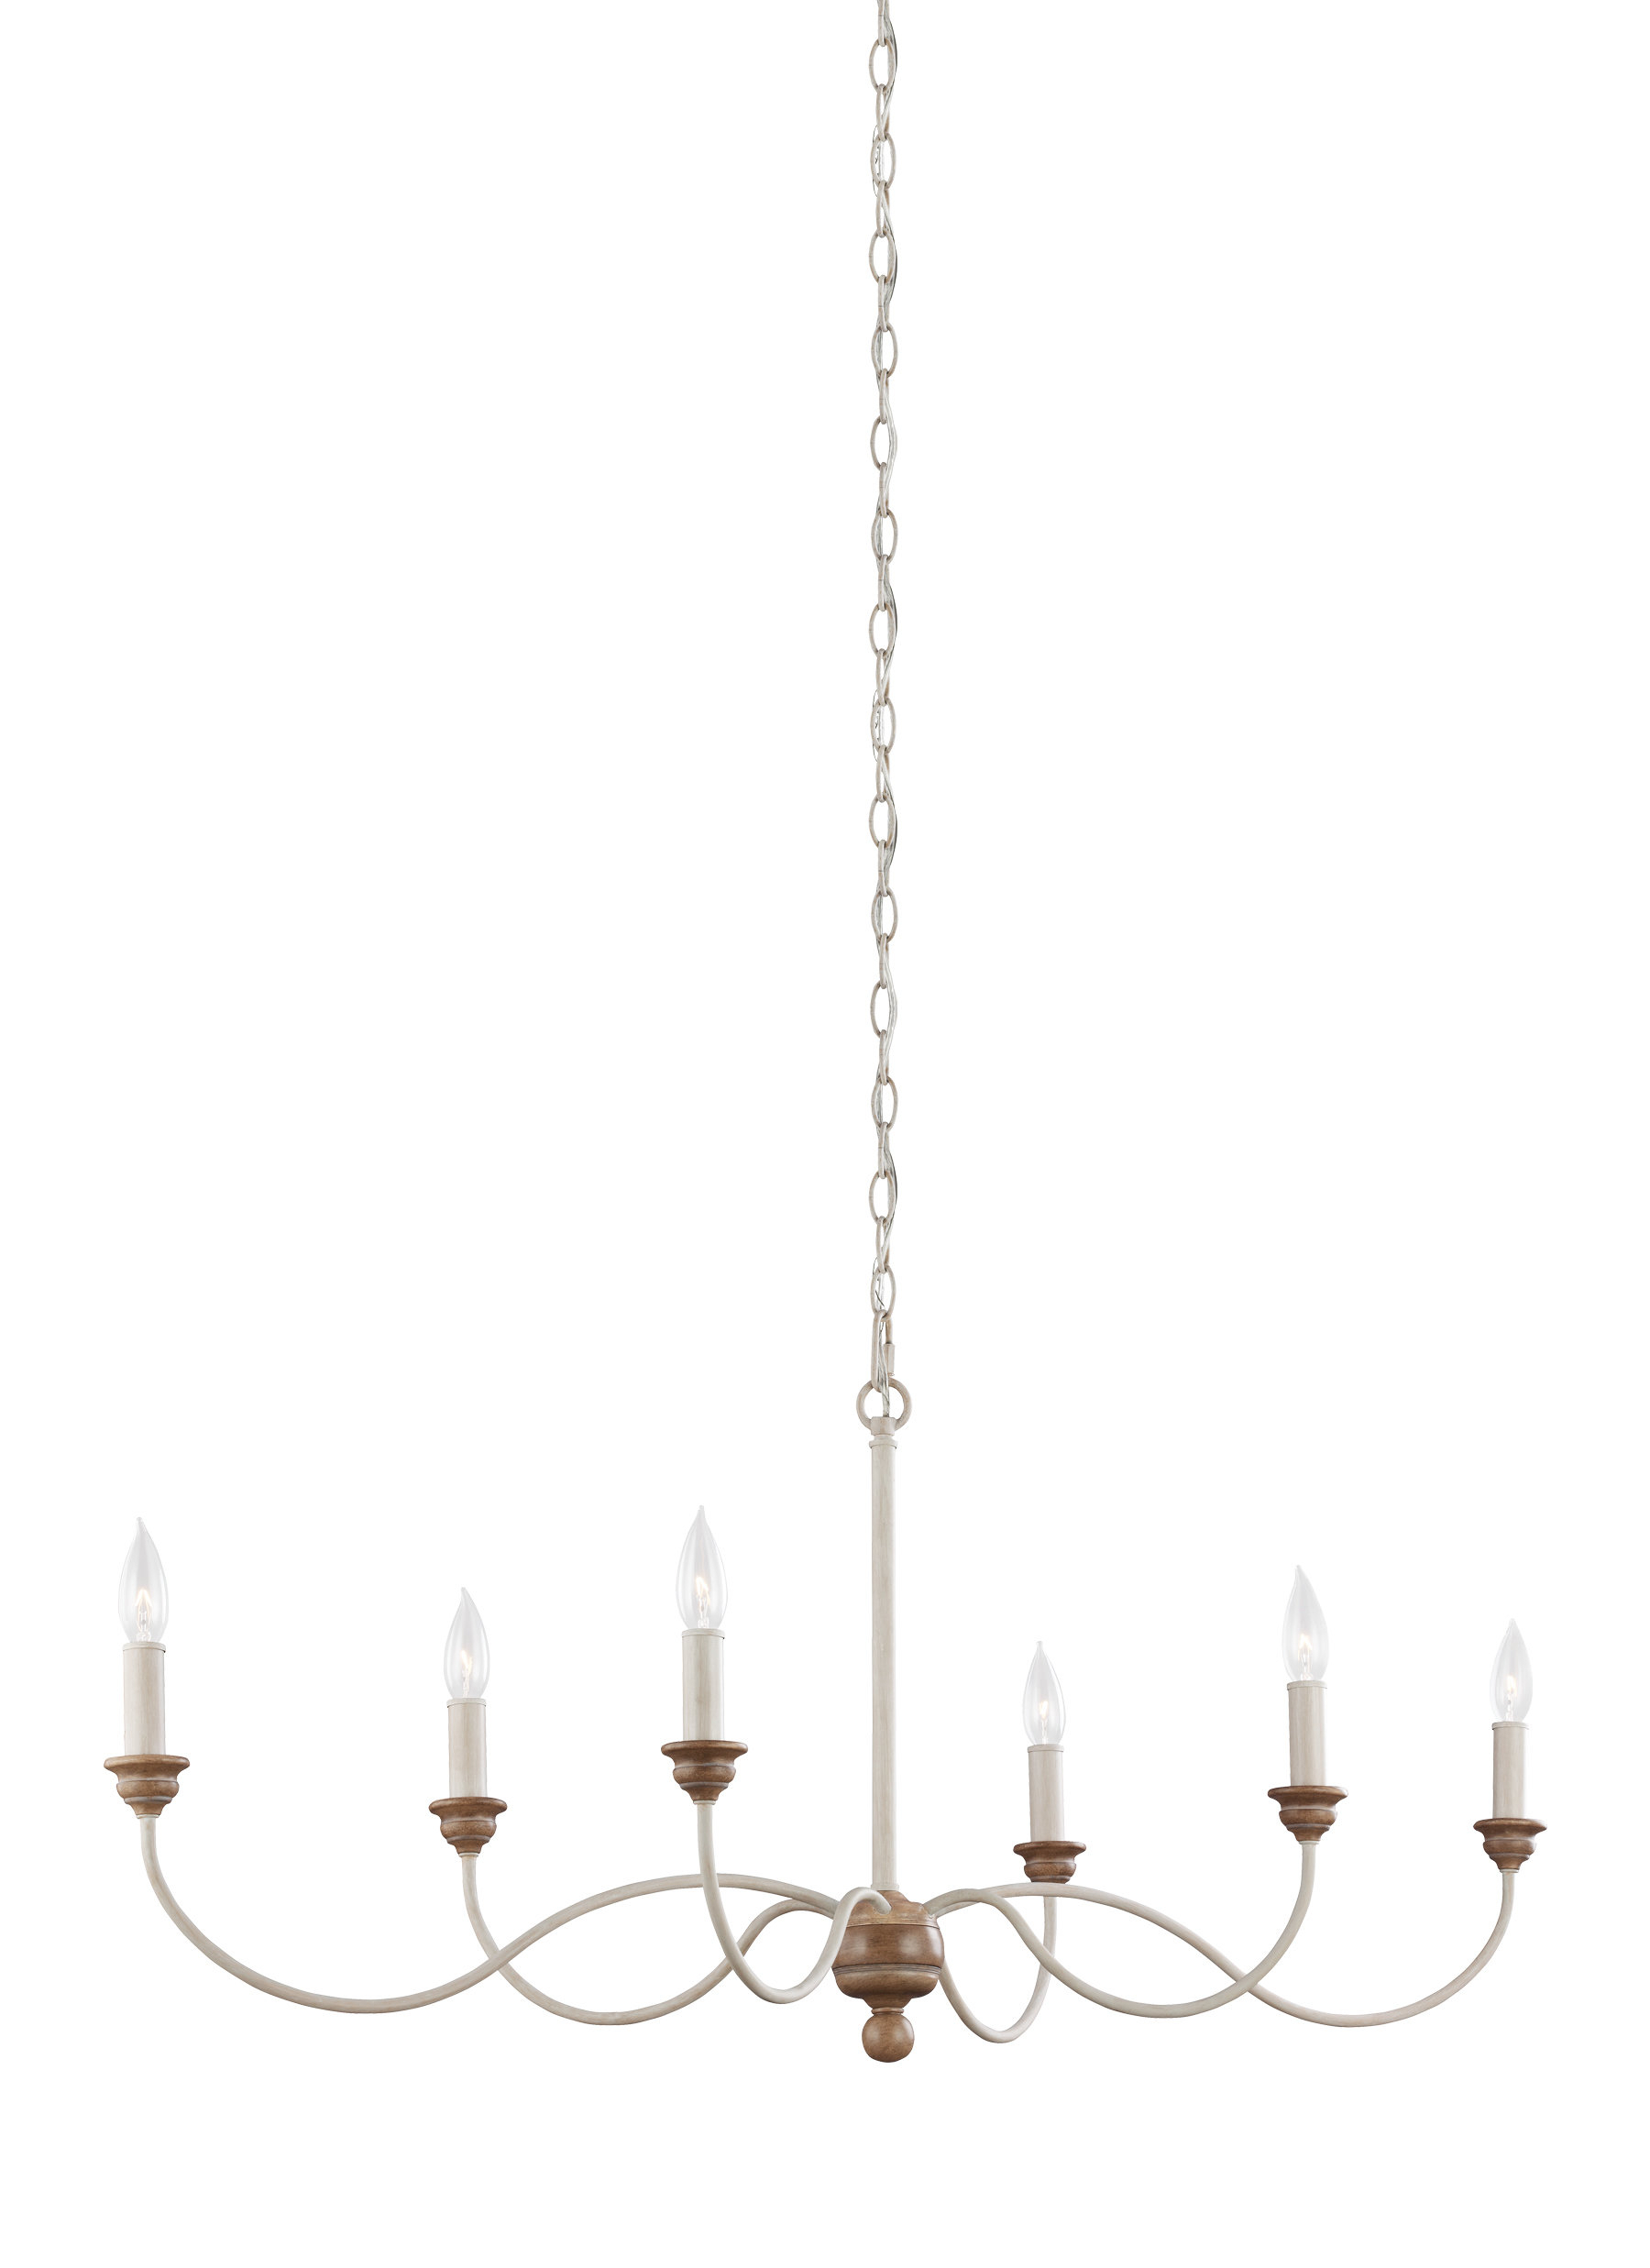 Sundberg 6 Light Candle Style Chandelier Regarding Hamza 6 Light Candle Style Chandeliers (View 9 of 30)